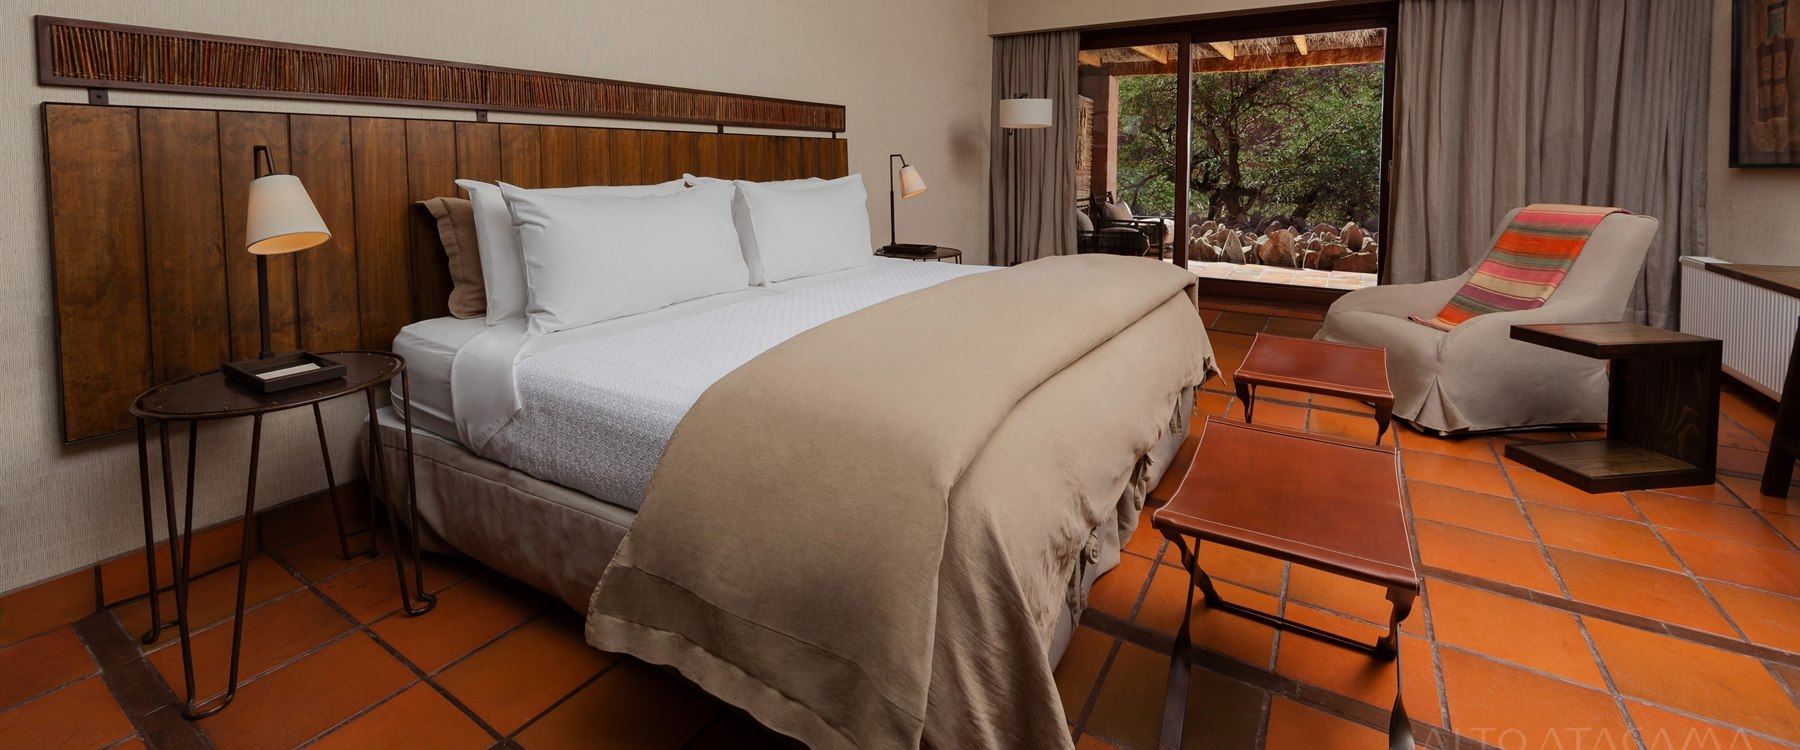 guest bedroom at alto atacama, Chile